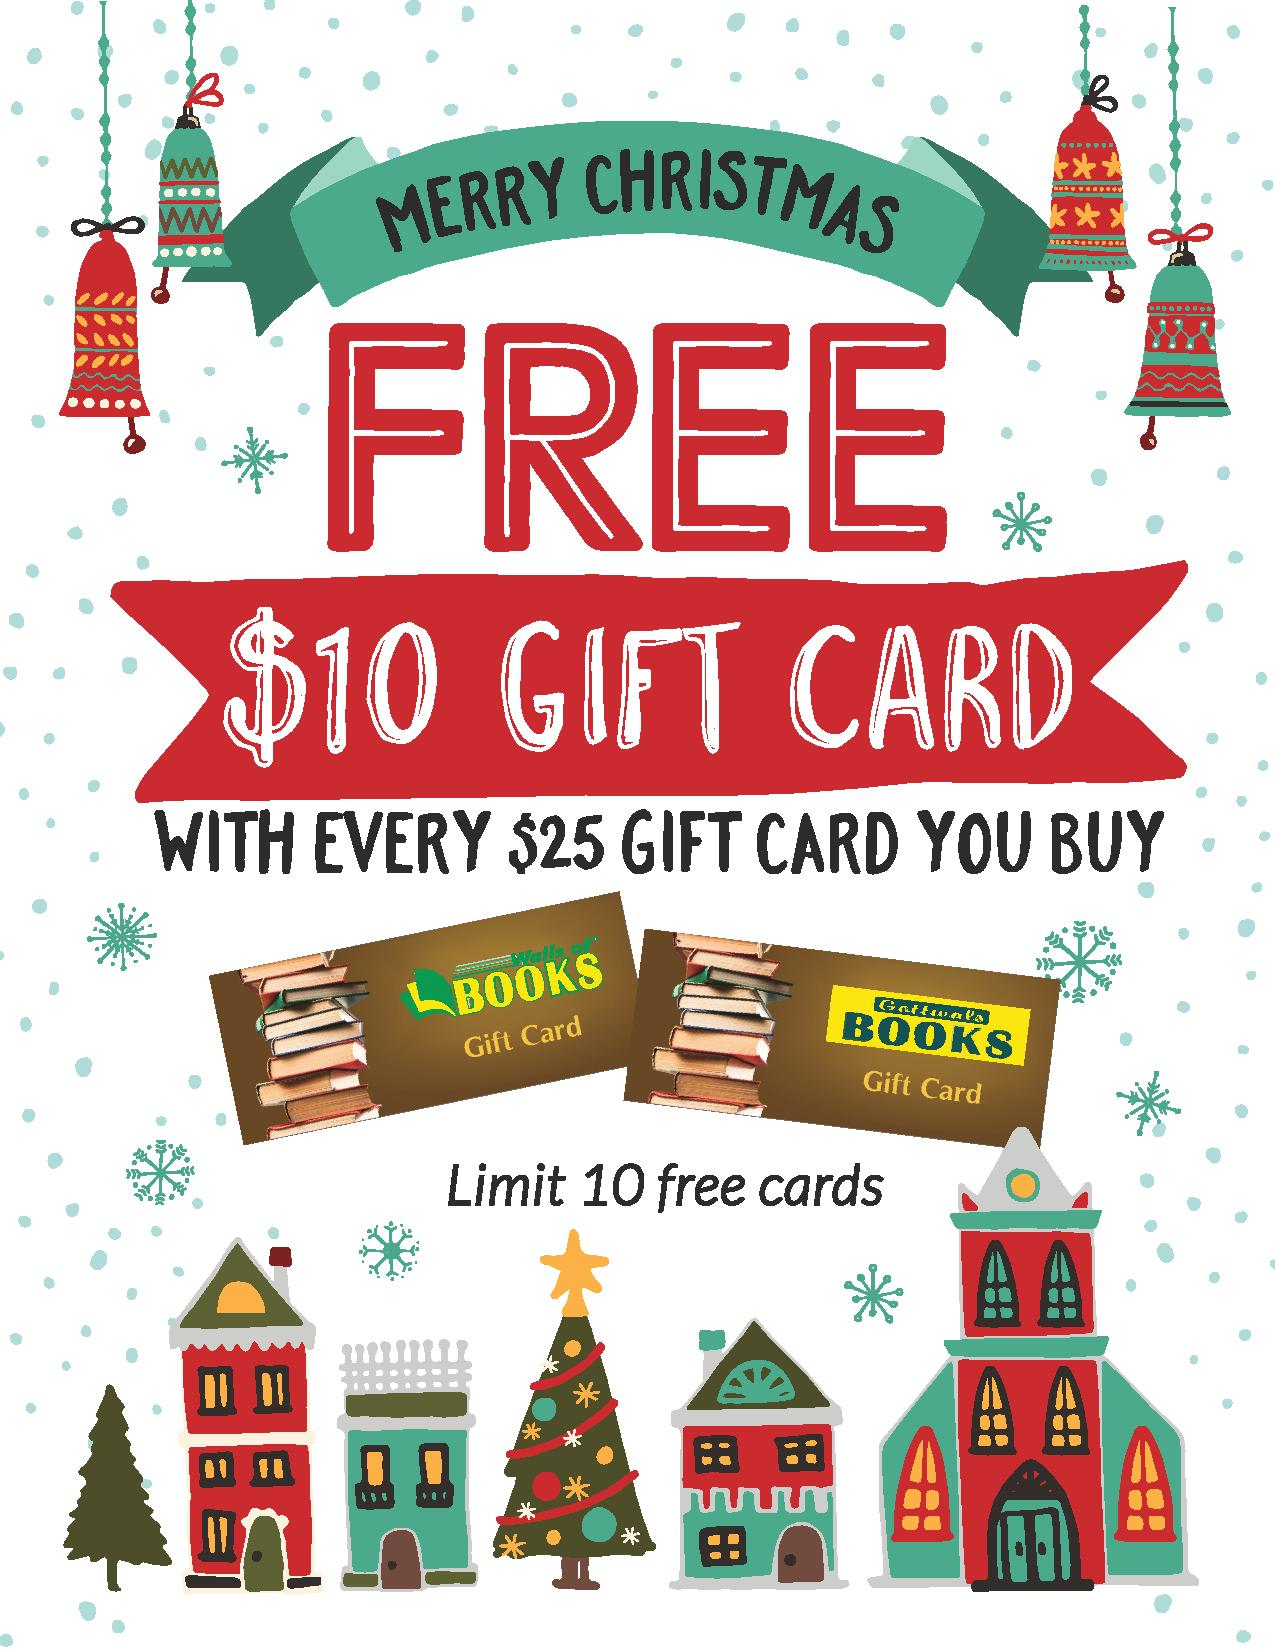 free 10 gift card cool gifts sulli giles gottwals books - Christmas Gift Card Deals